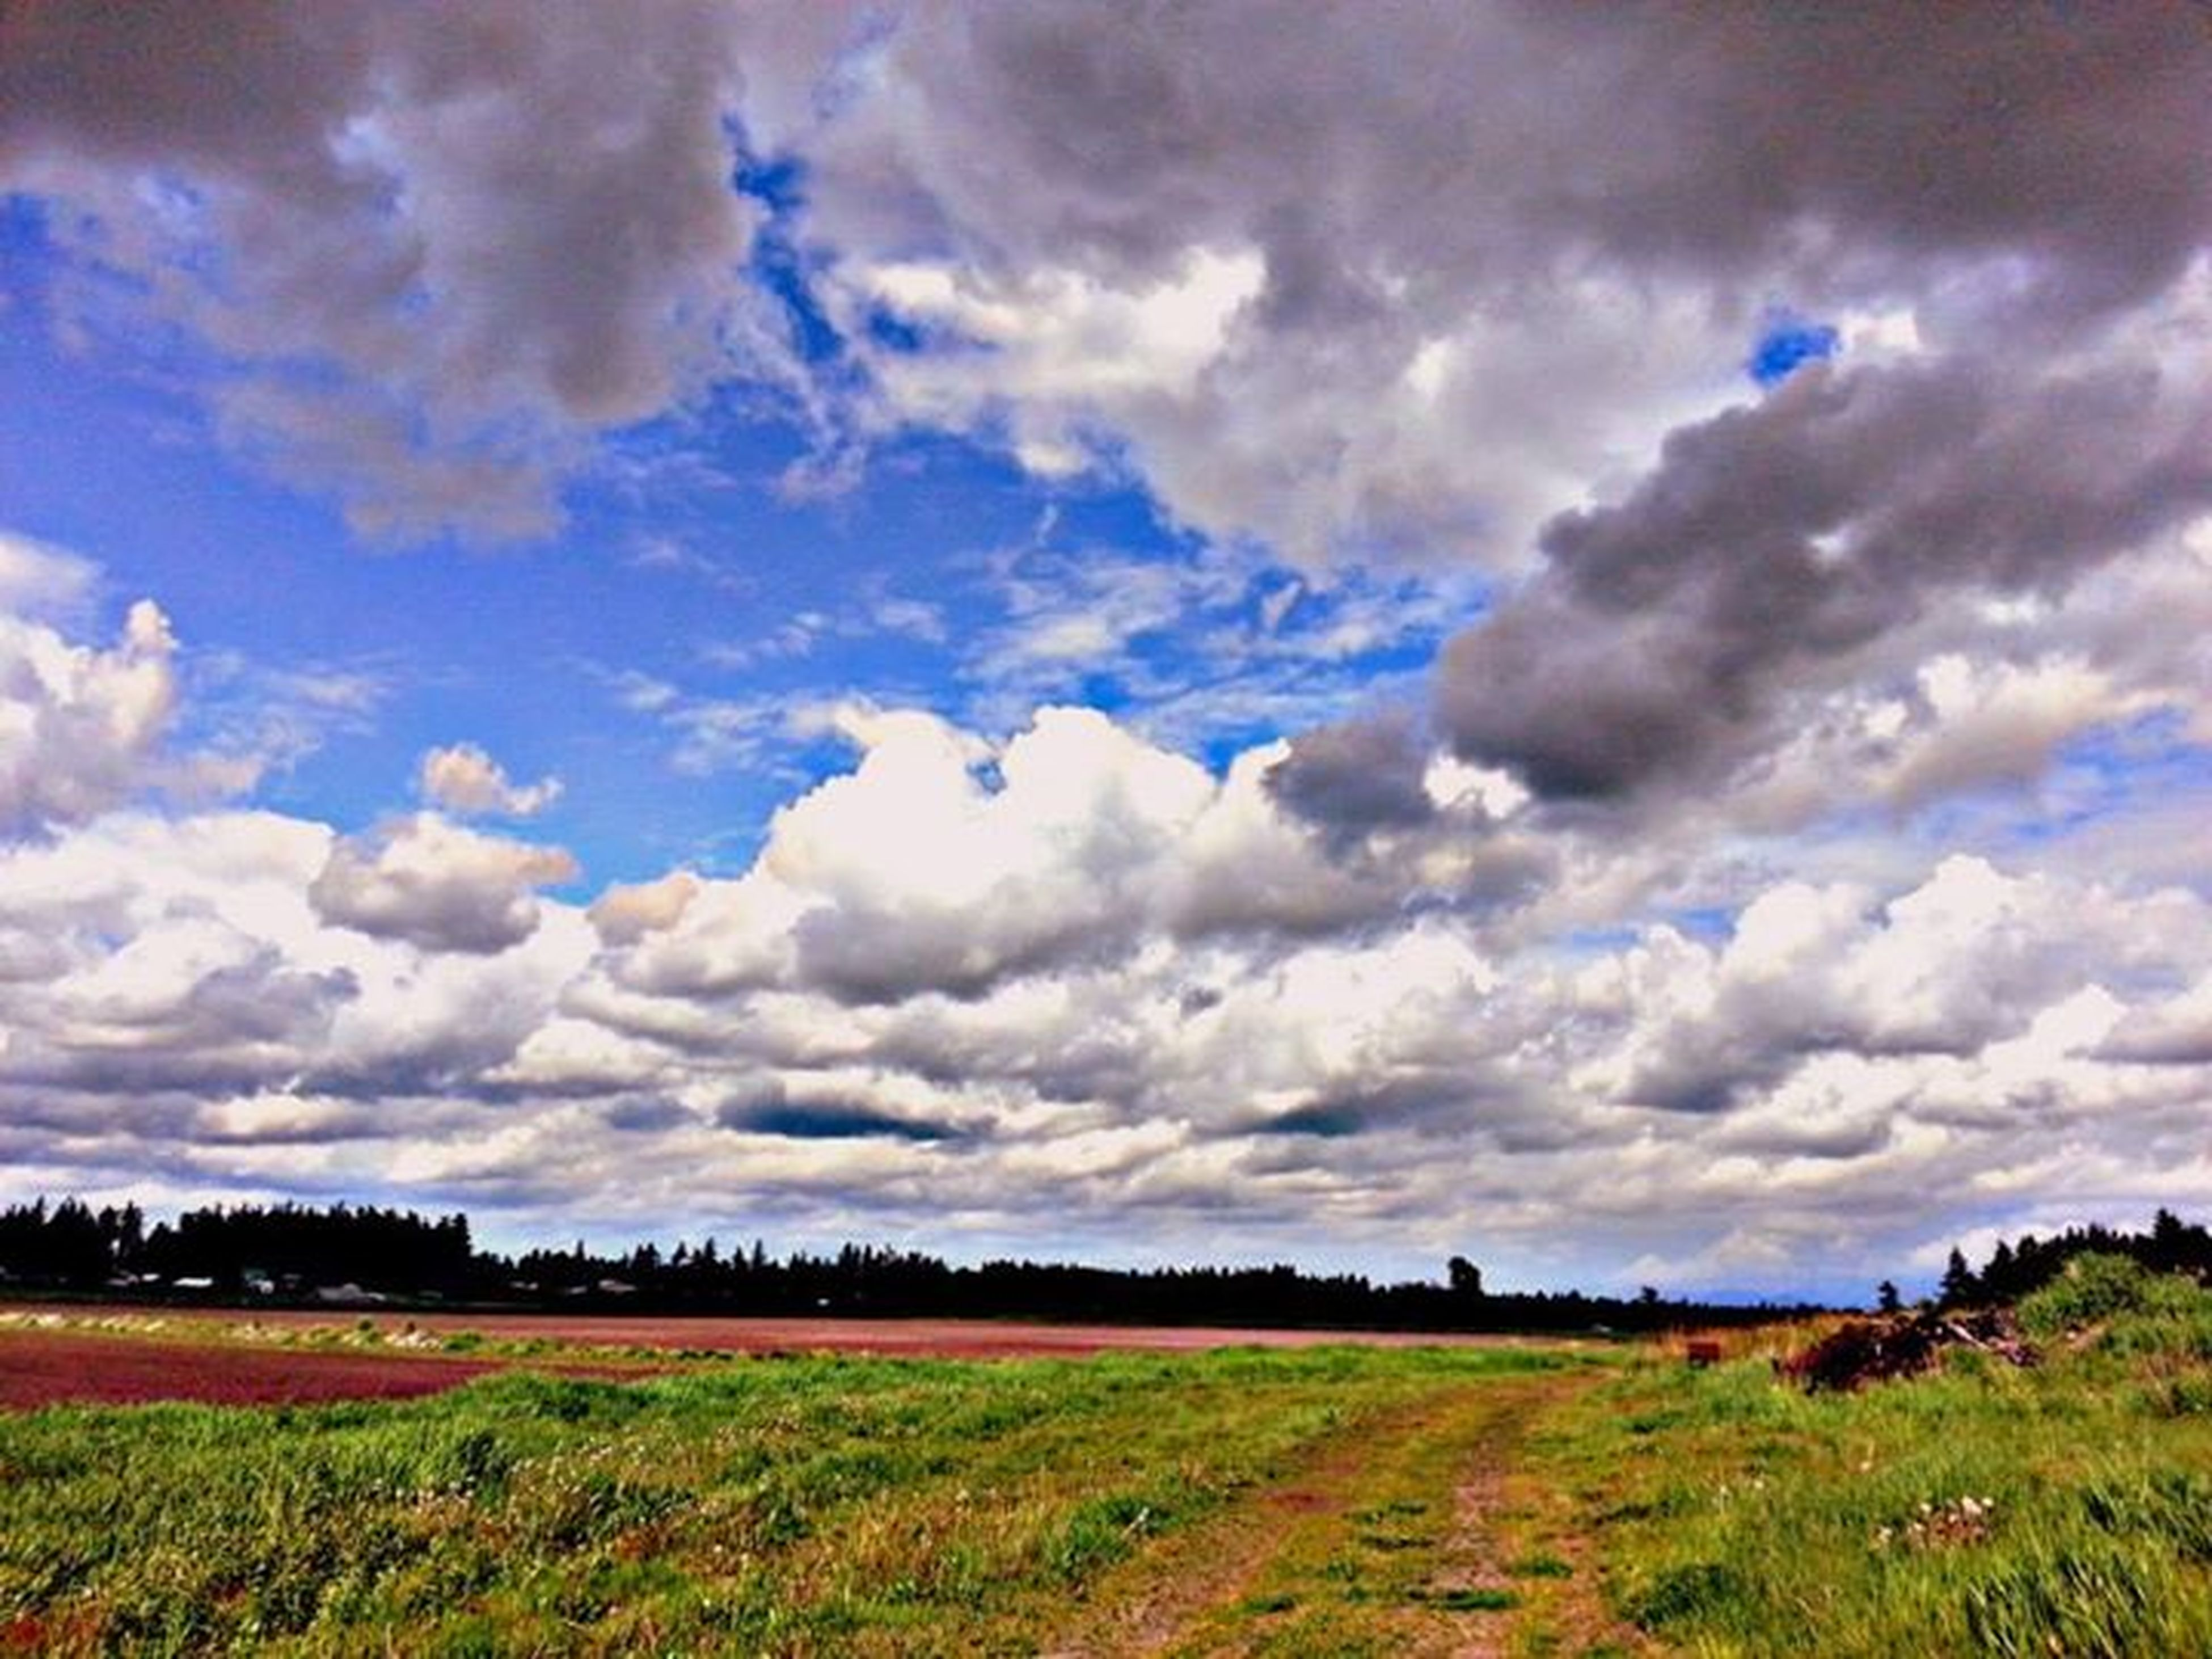 sky, landscape, field, tranquil scene, cloud - sky, tranquility, grass, scenics, beauty in nature, cloudy, nature, cloud, rural scene, growth, agriculture, grassy, horizon over land, idyllic, farm, green color